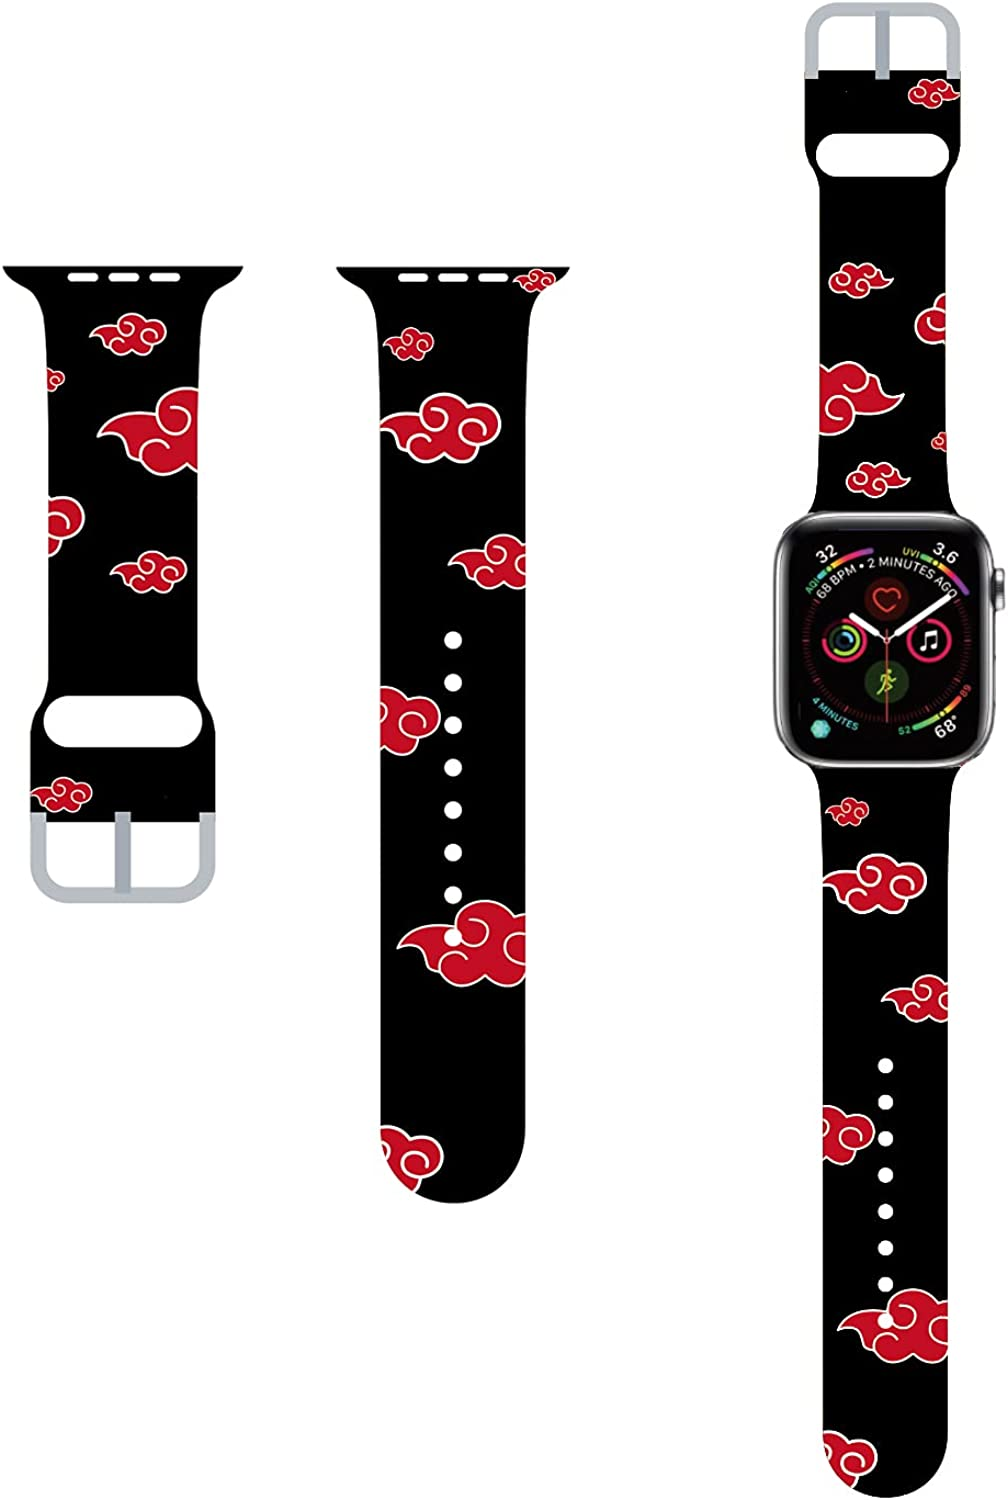 PlusYard Apple Watch Band Compatible With 38mm/40mm/42mm/44mm Anime Fan Memorabilia Gifts For Men/youngboy/kids Birthday Christmas Compatible iWatch Series 6 & SE 5,4,3,2,1